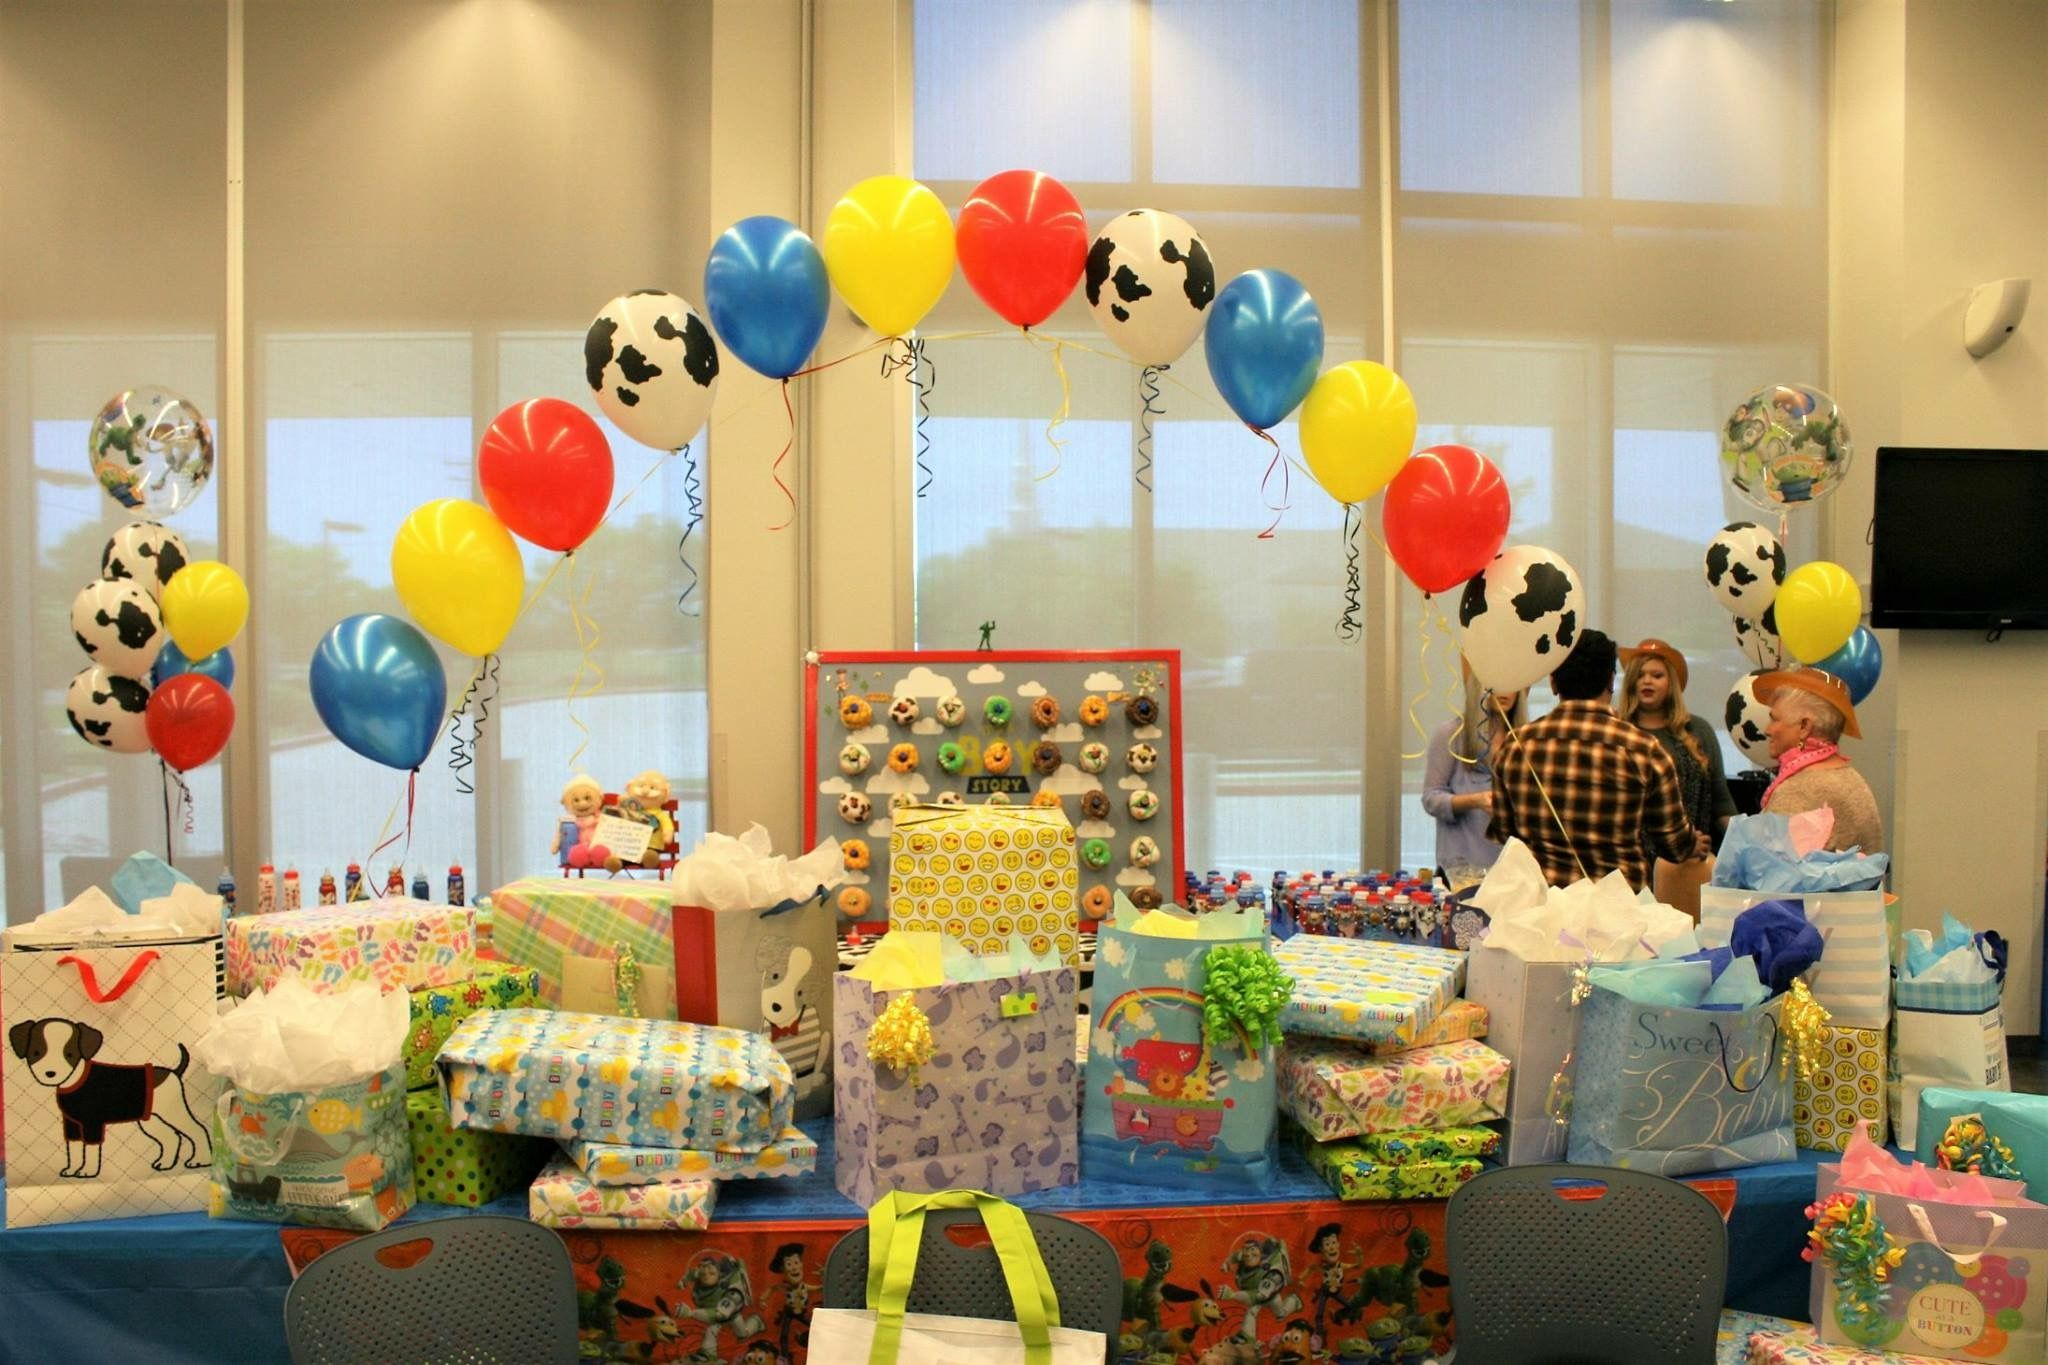 Toy story cowboy baby shower decoration ideas balloons ...